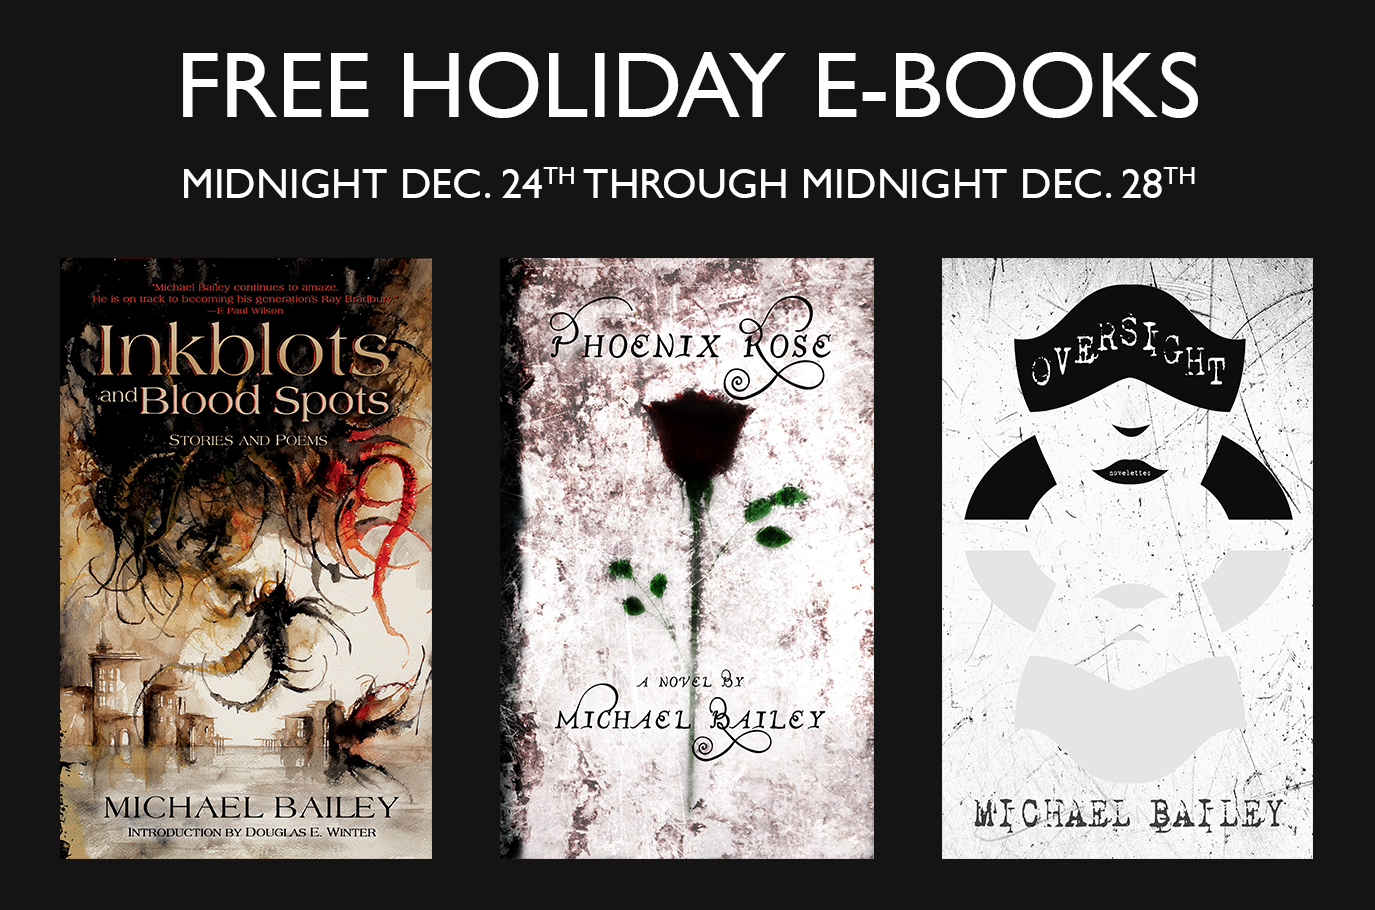 Free e-Book Holiday